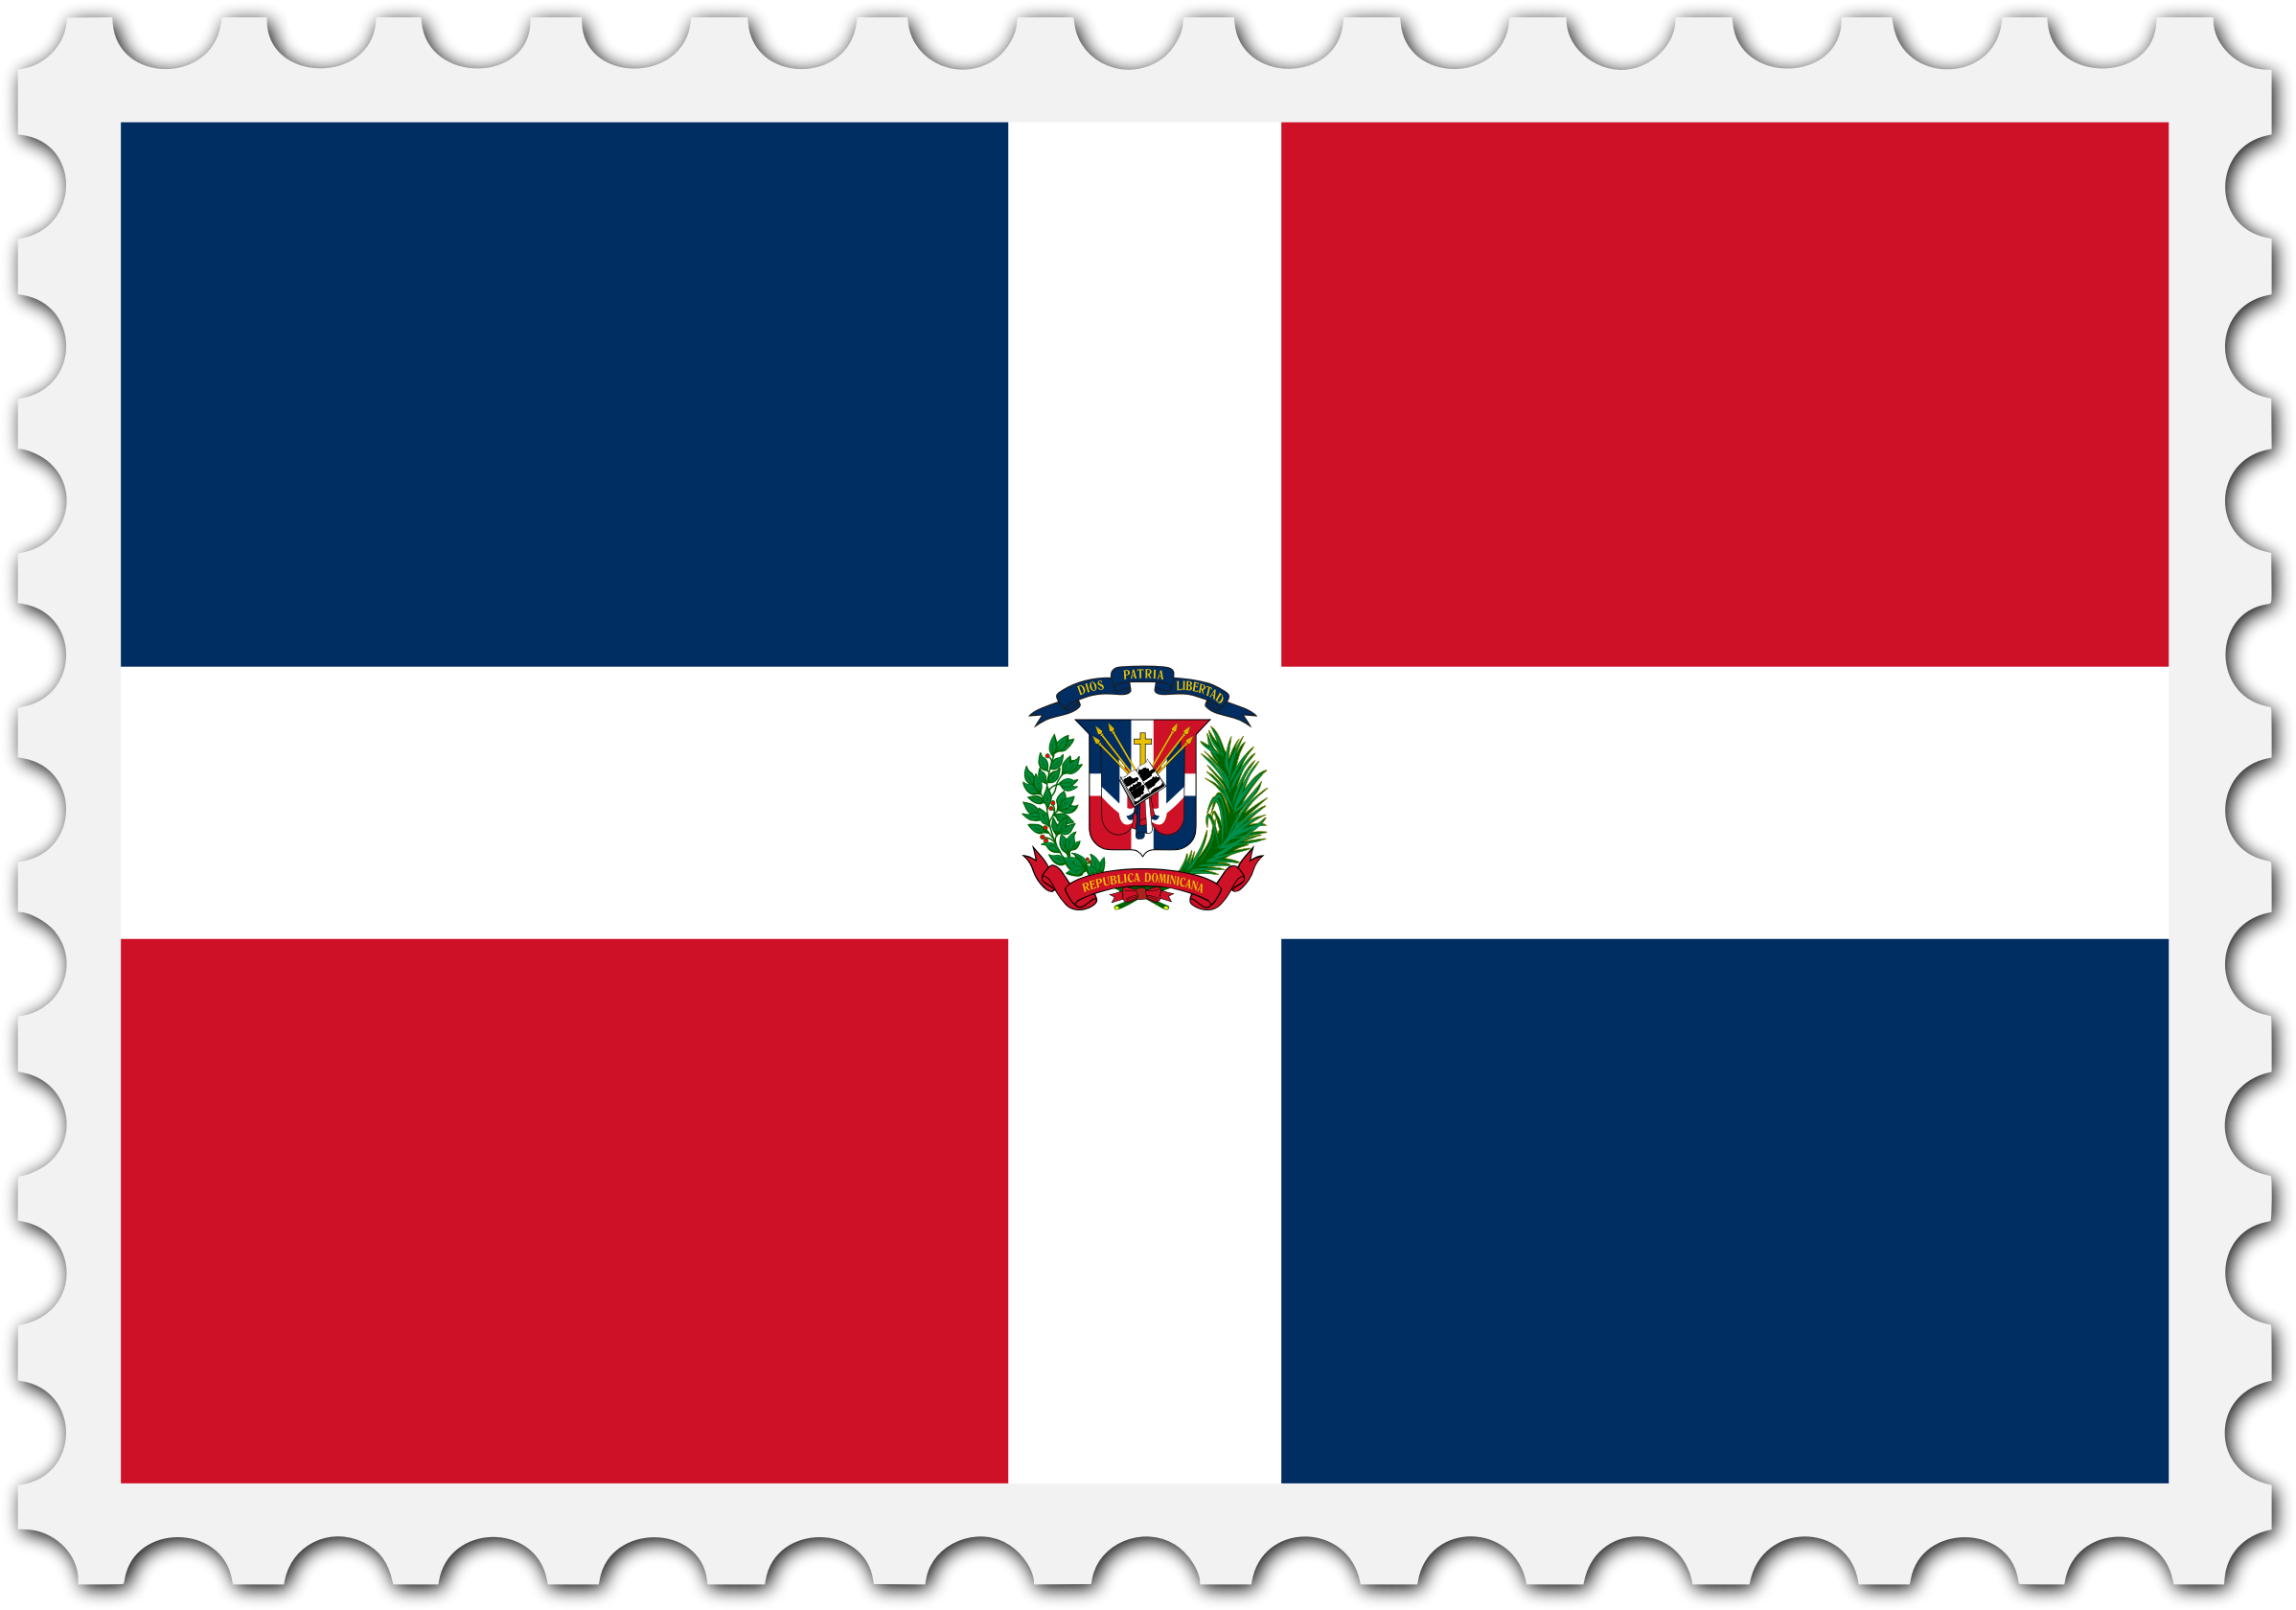 Dominican Republic flag stamp by Firkin